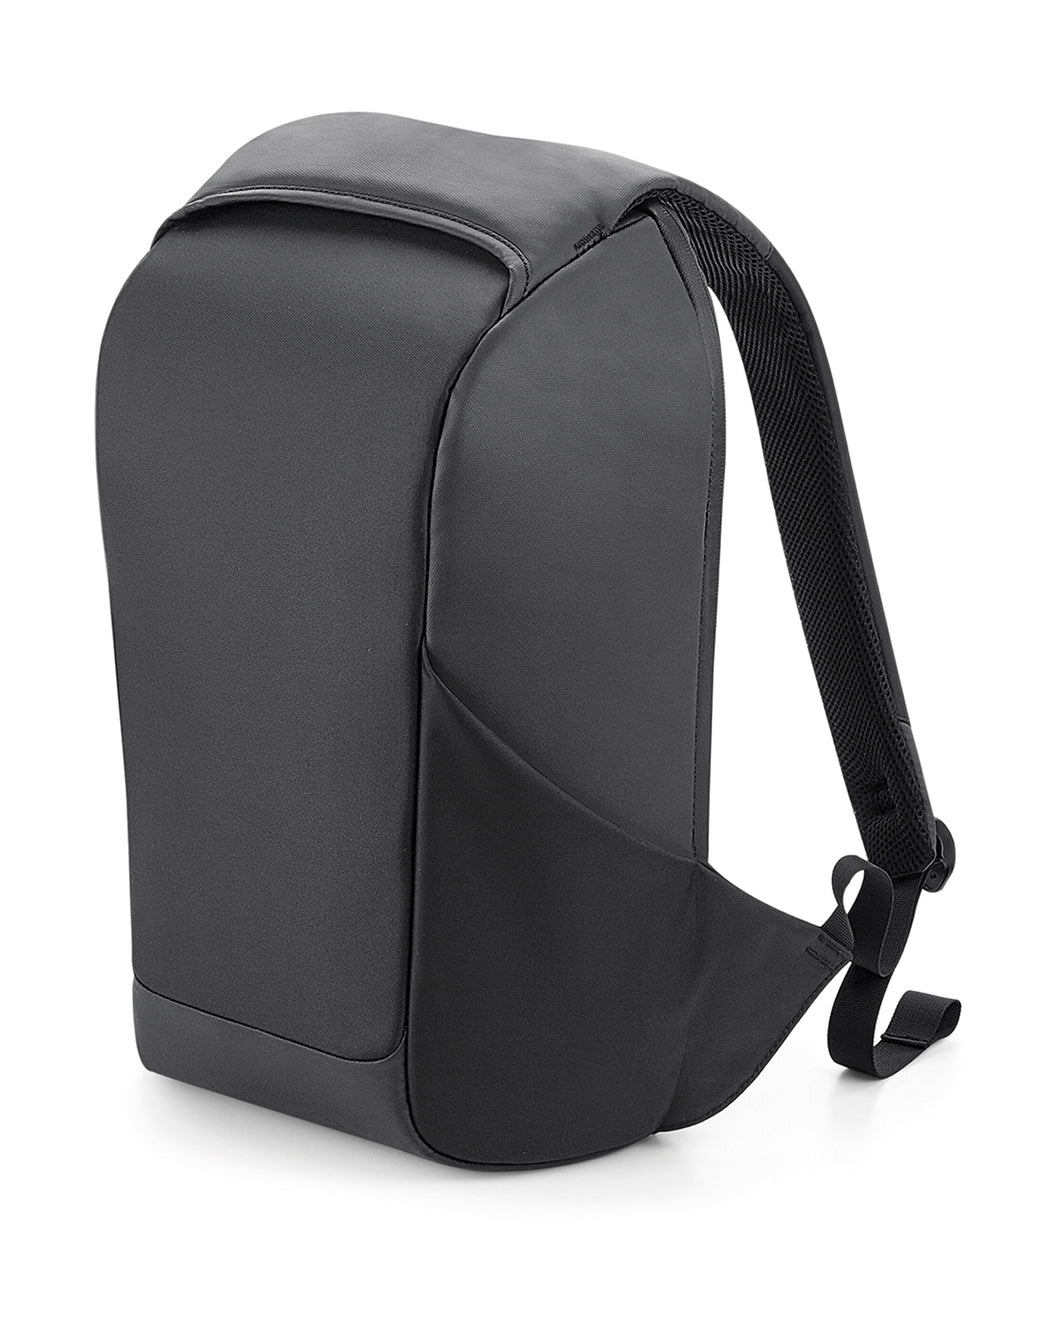 Project Charge Security Rucksack